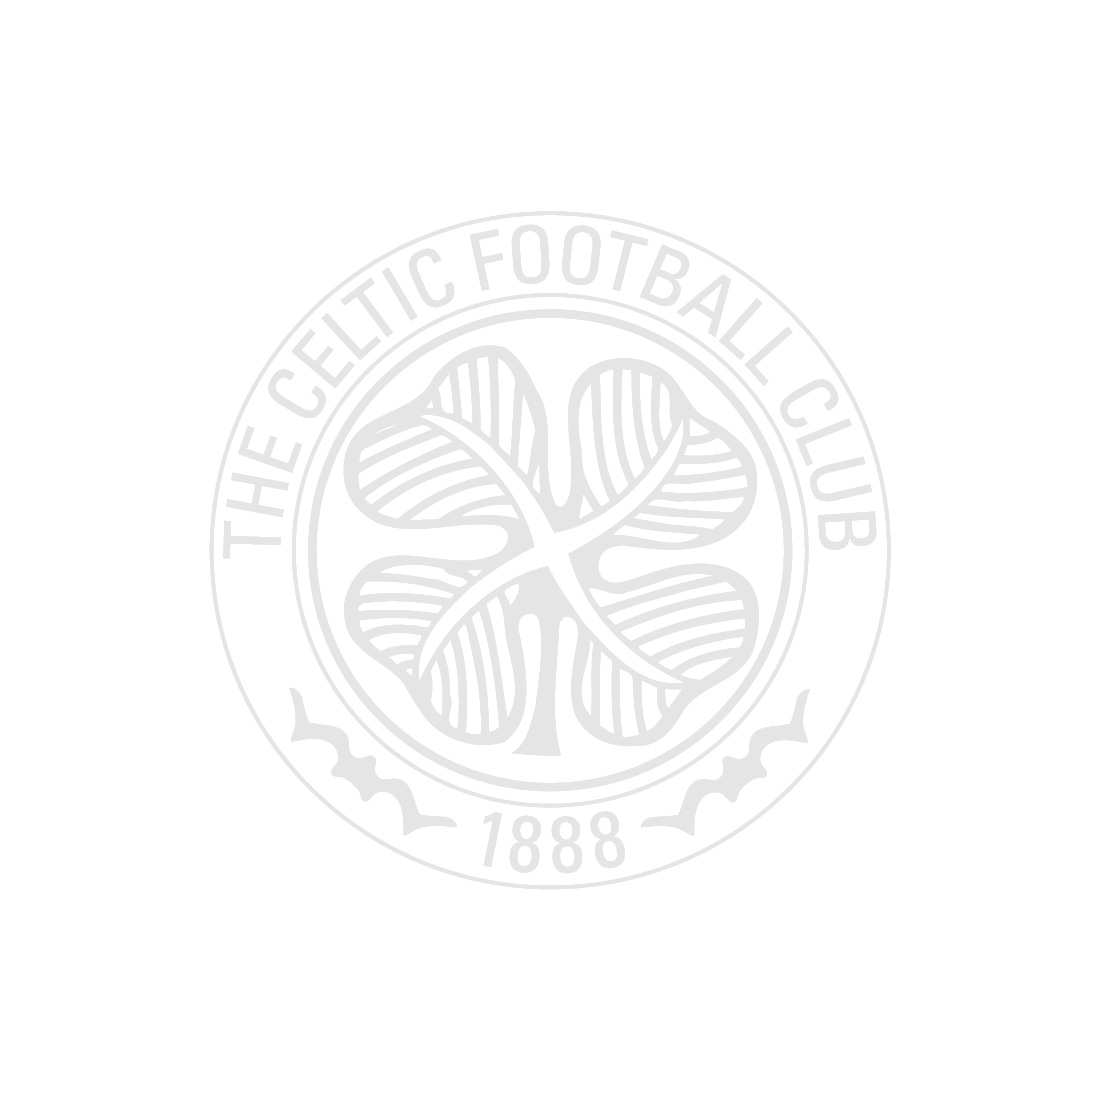 Celtic FC Cola Bottles